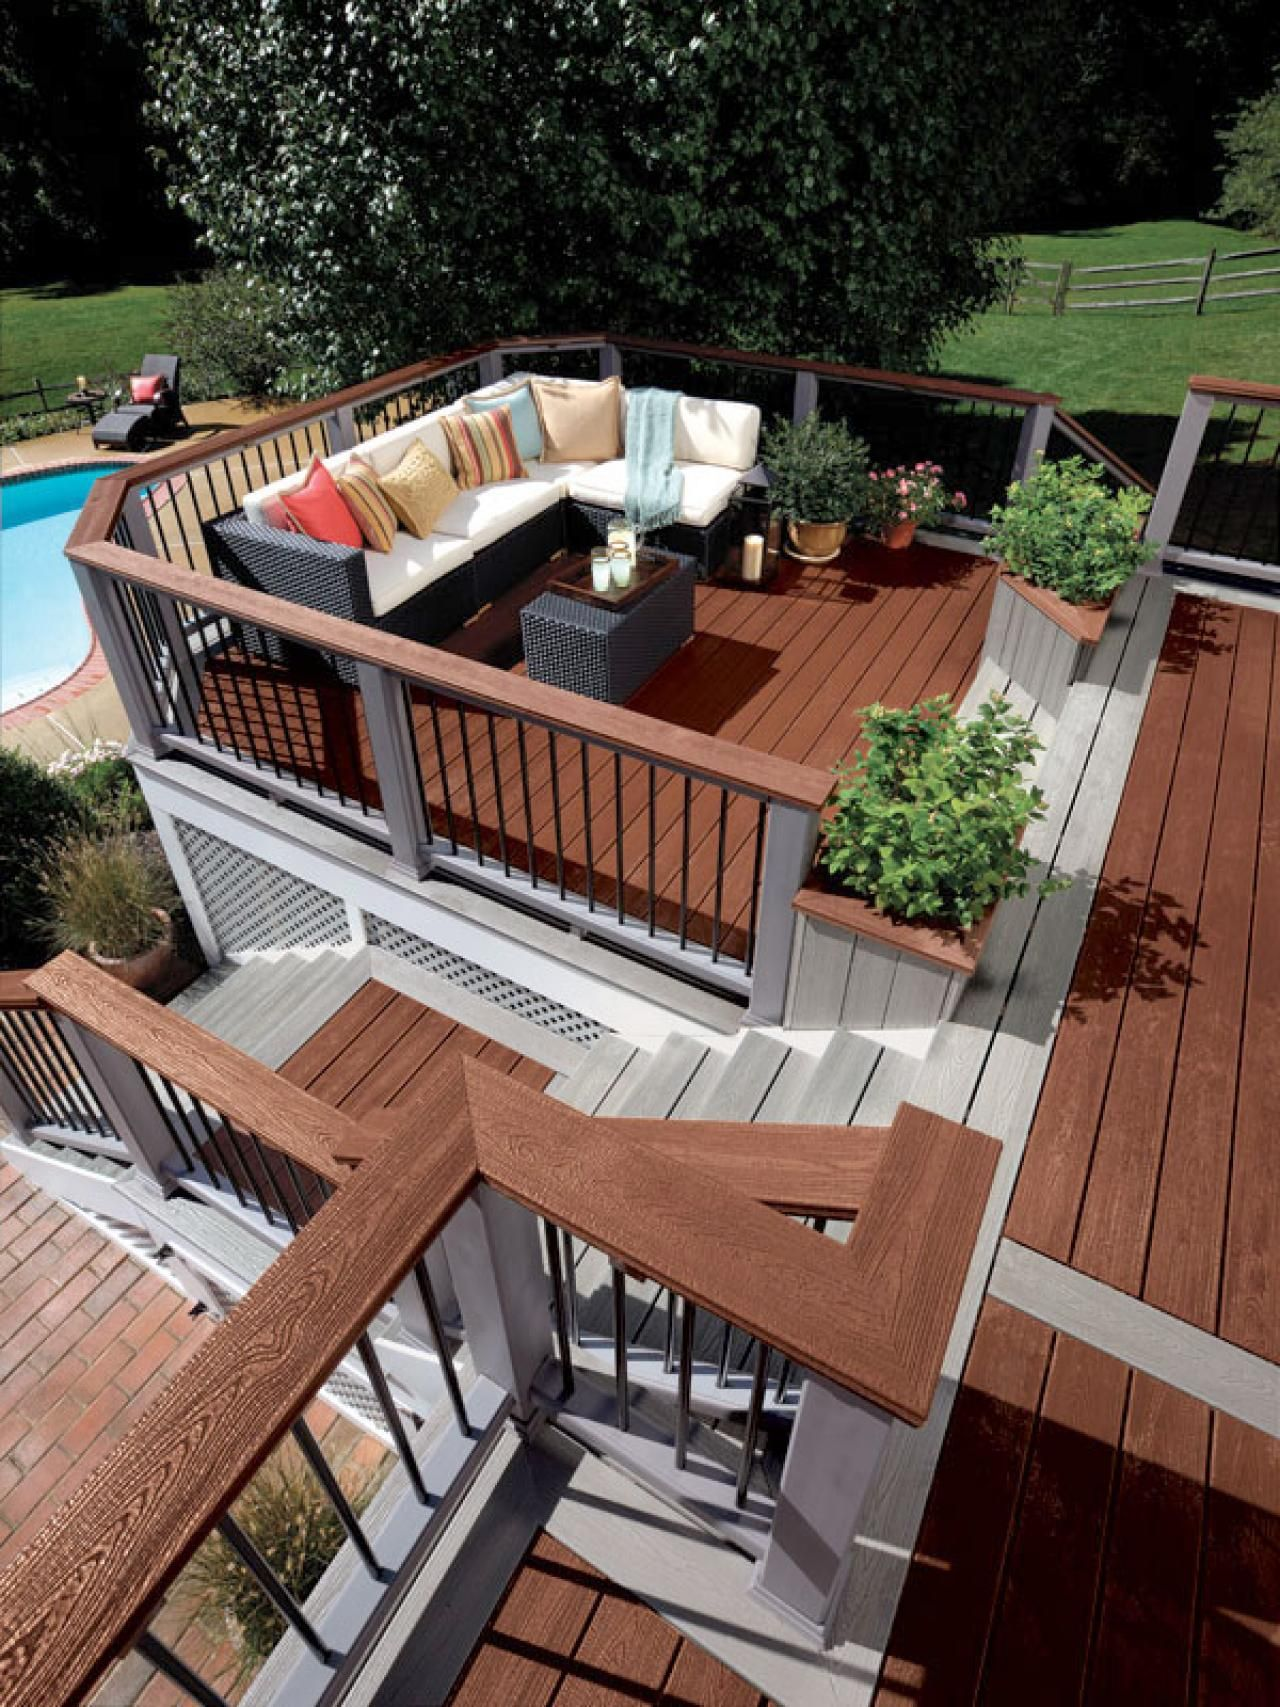 Like How Color Defines Areas Deck Design Ideas | Outdoor Design    Landscaping Ideas, Porches, Decks, U0026 Patios | HGTV